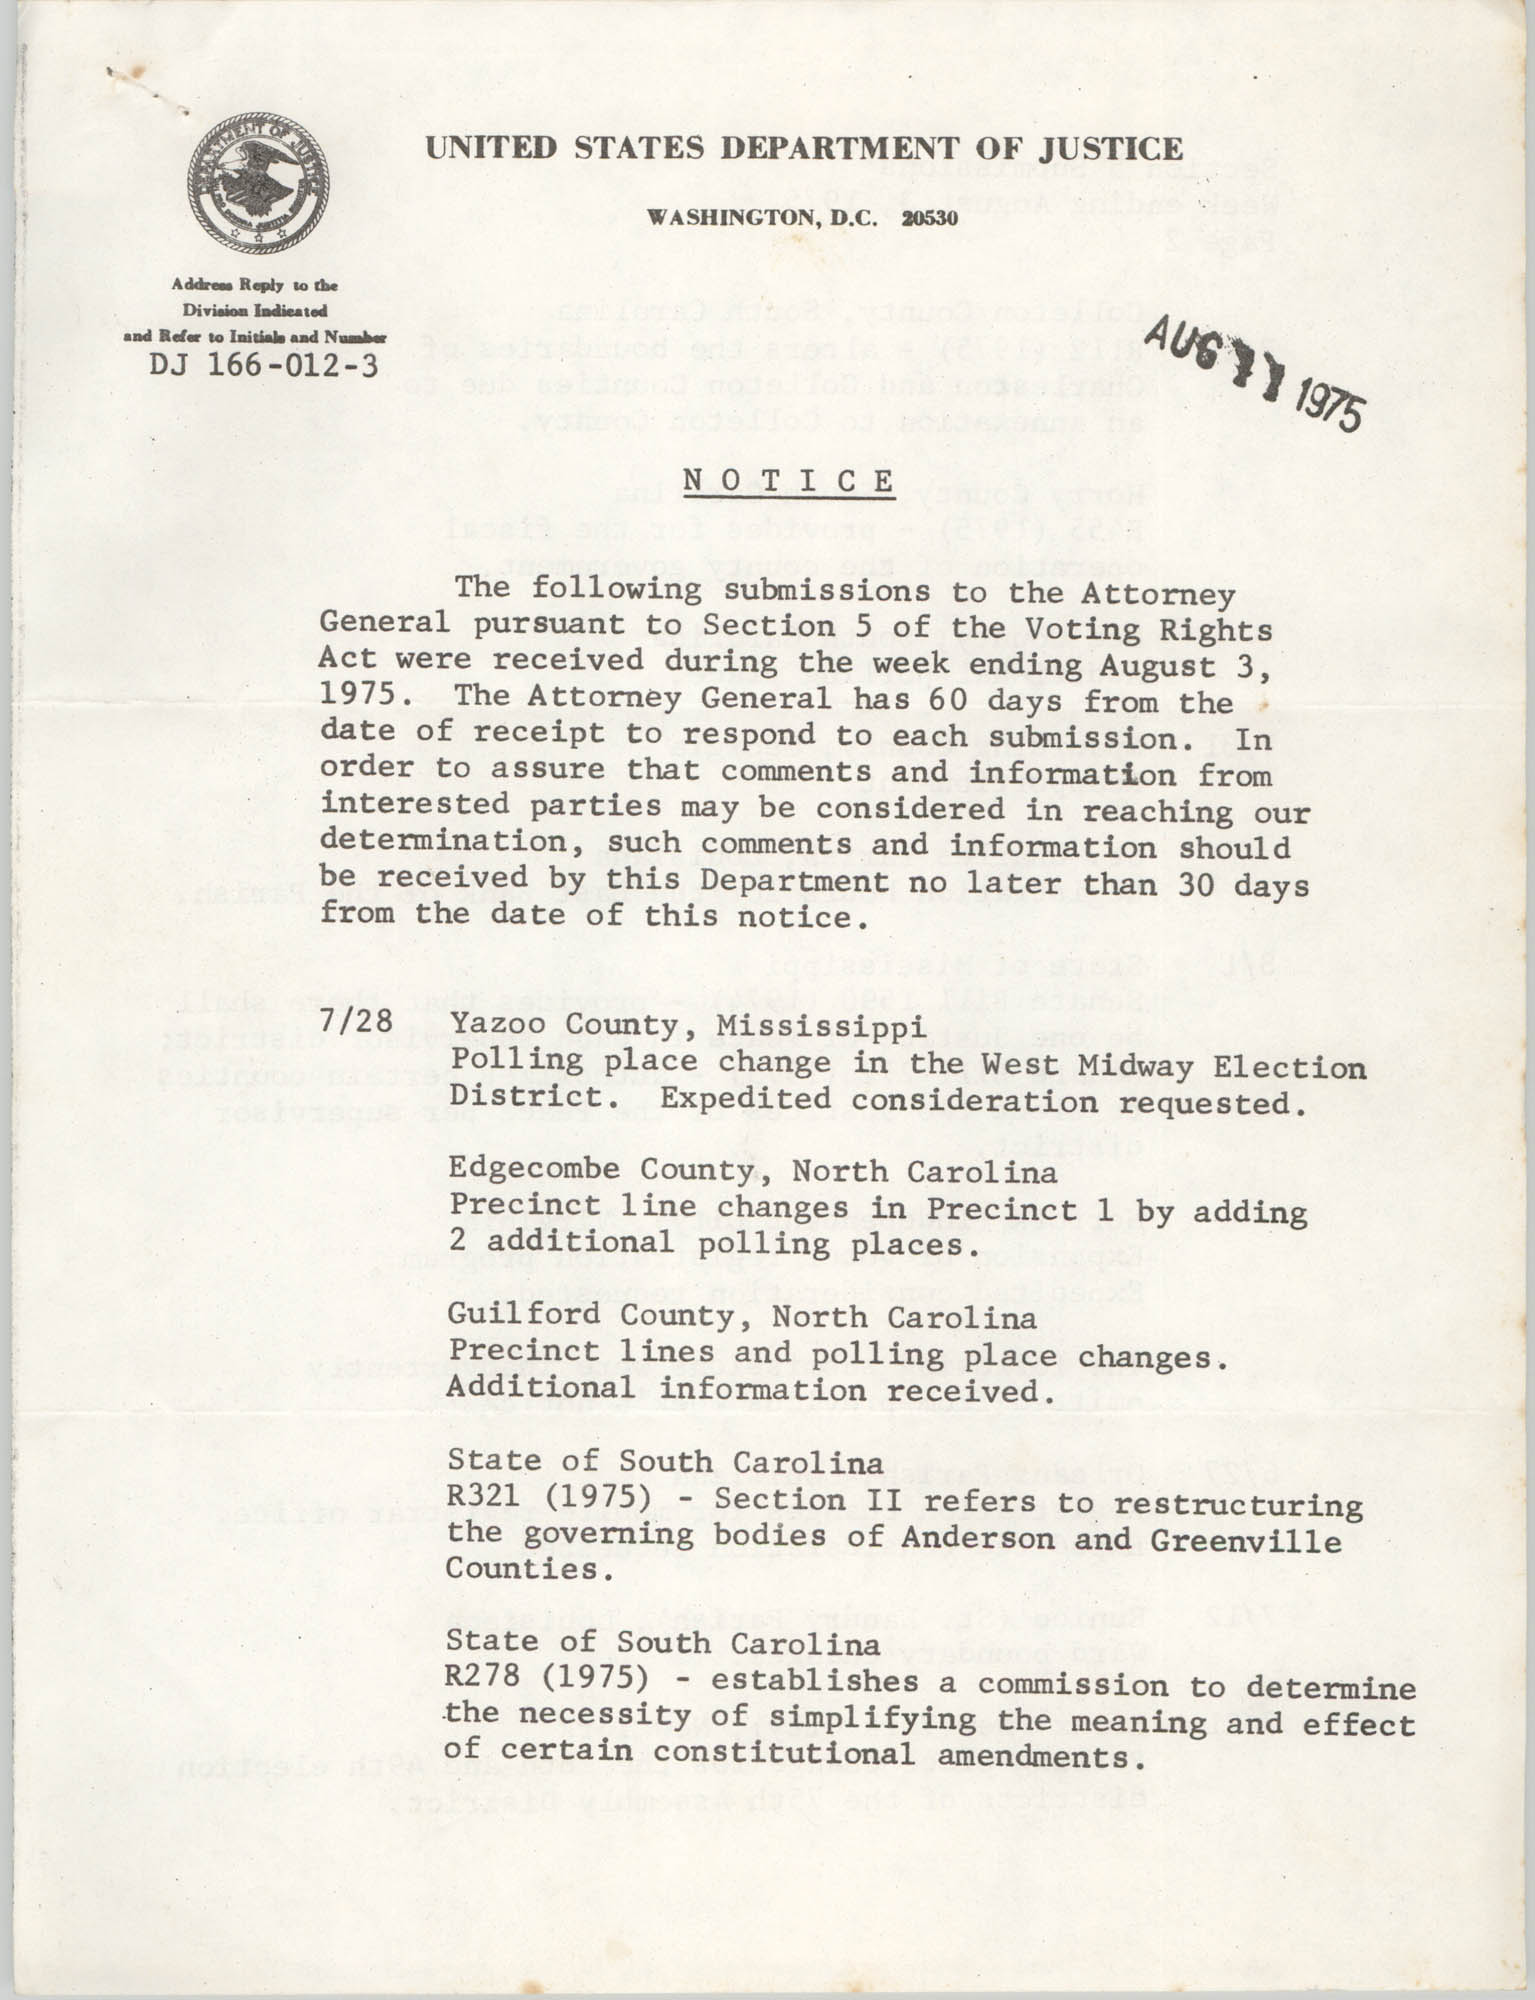 United States Department of Justice Notice, August 11, 1975